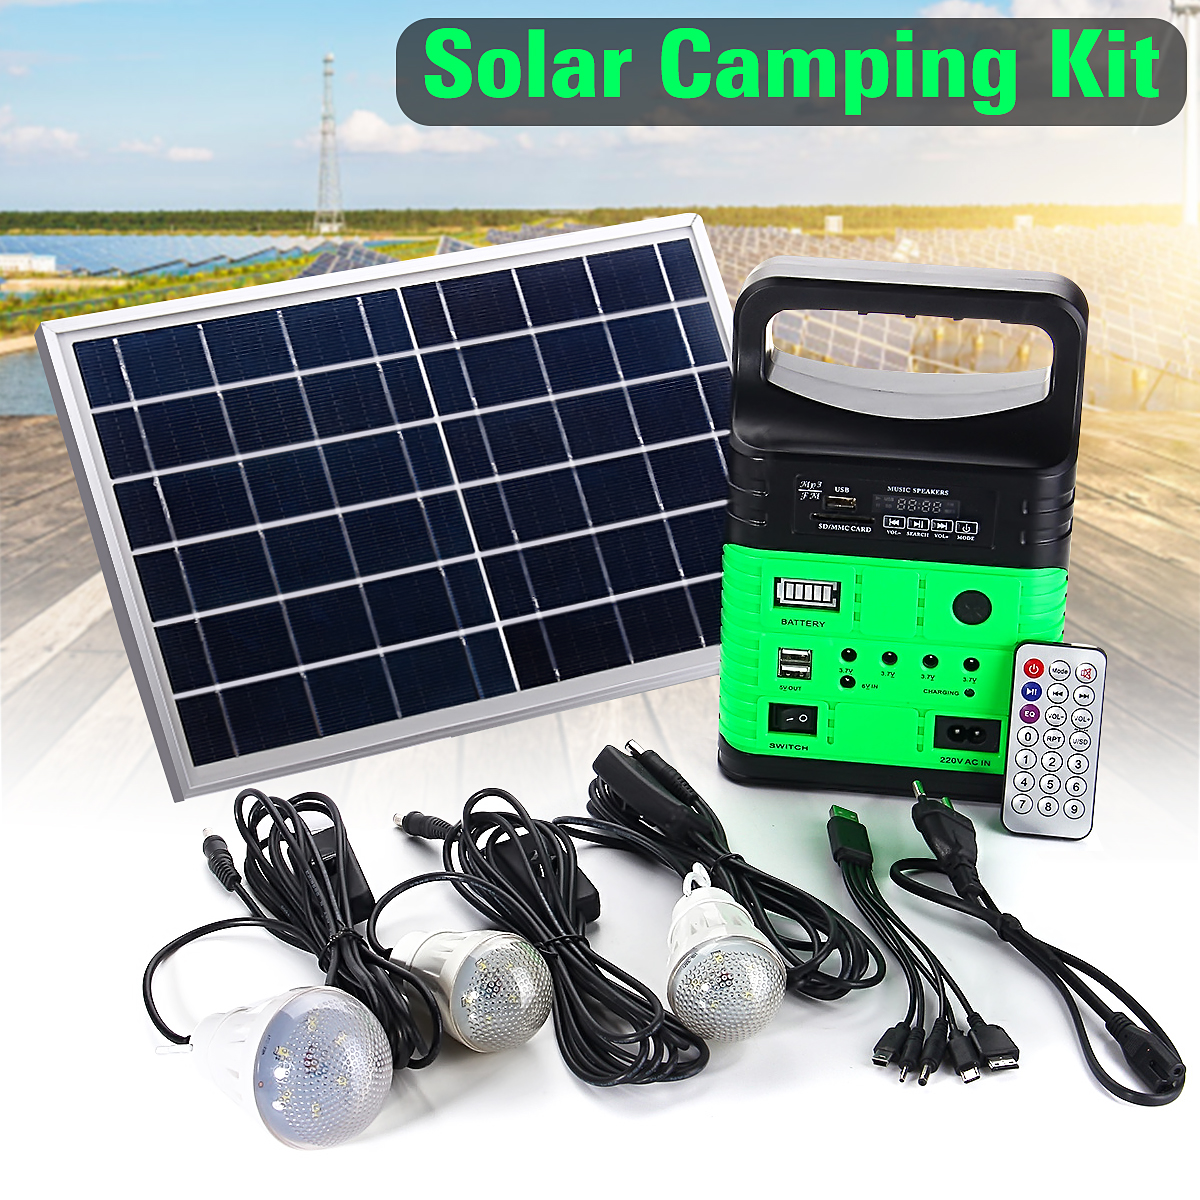 Smuxi Portable Solar Generator Outdoor Power Mini DC6W Solar Panel 6V-9Ah Lead-acid Battery Charging LED Lighting System portable dc solar panel charging generator power supply board charger radio mp3 flashlight mobile led lighting system outdoor